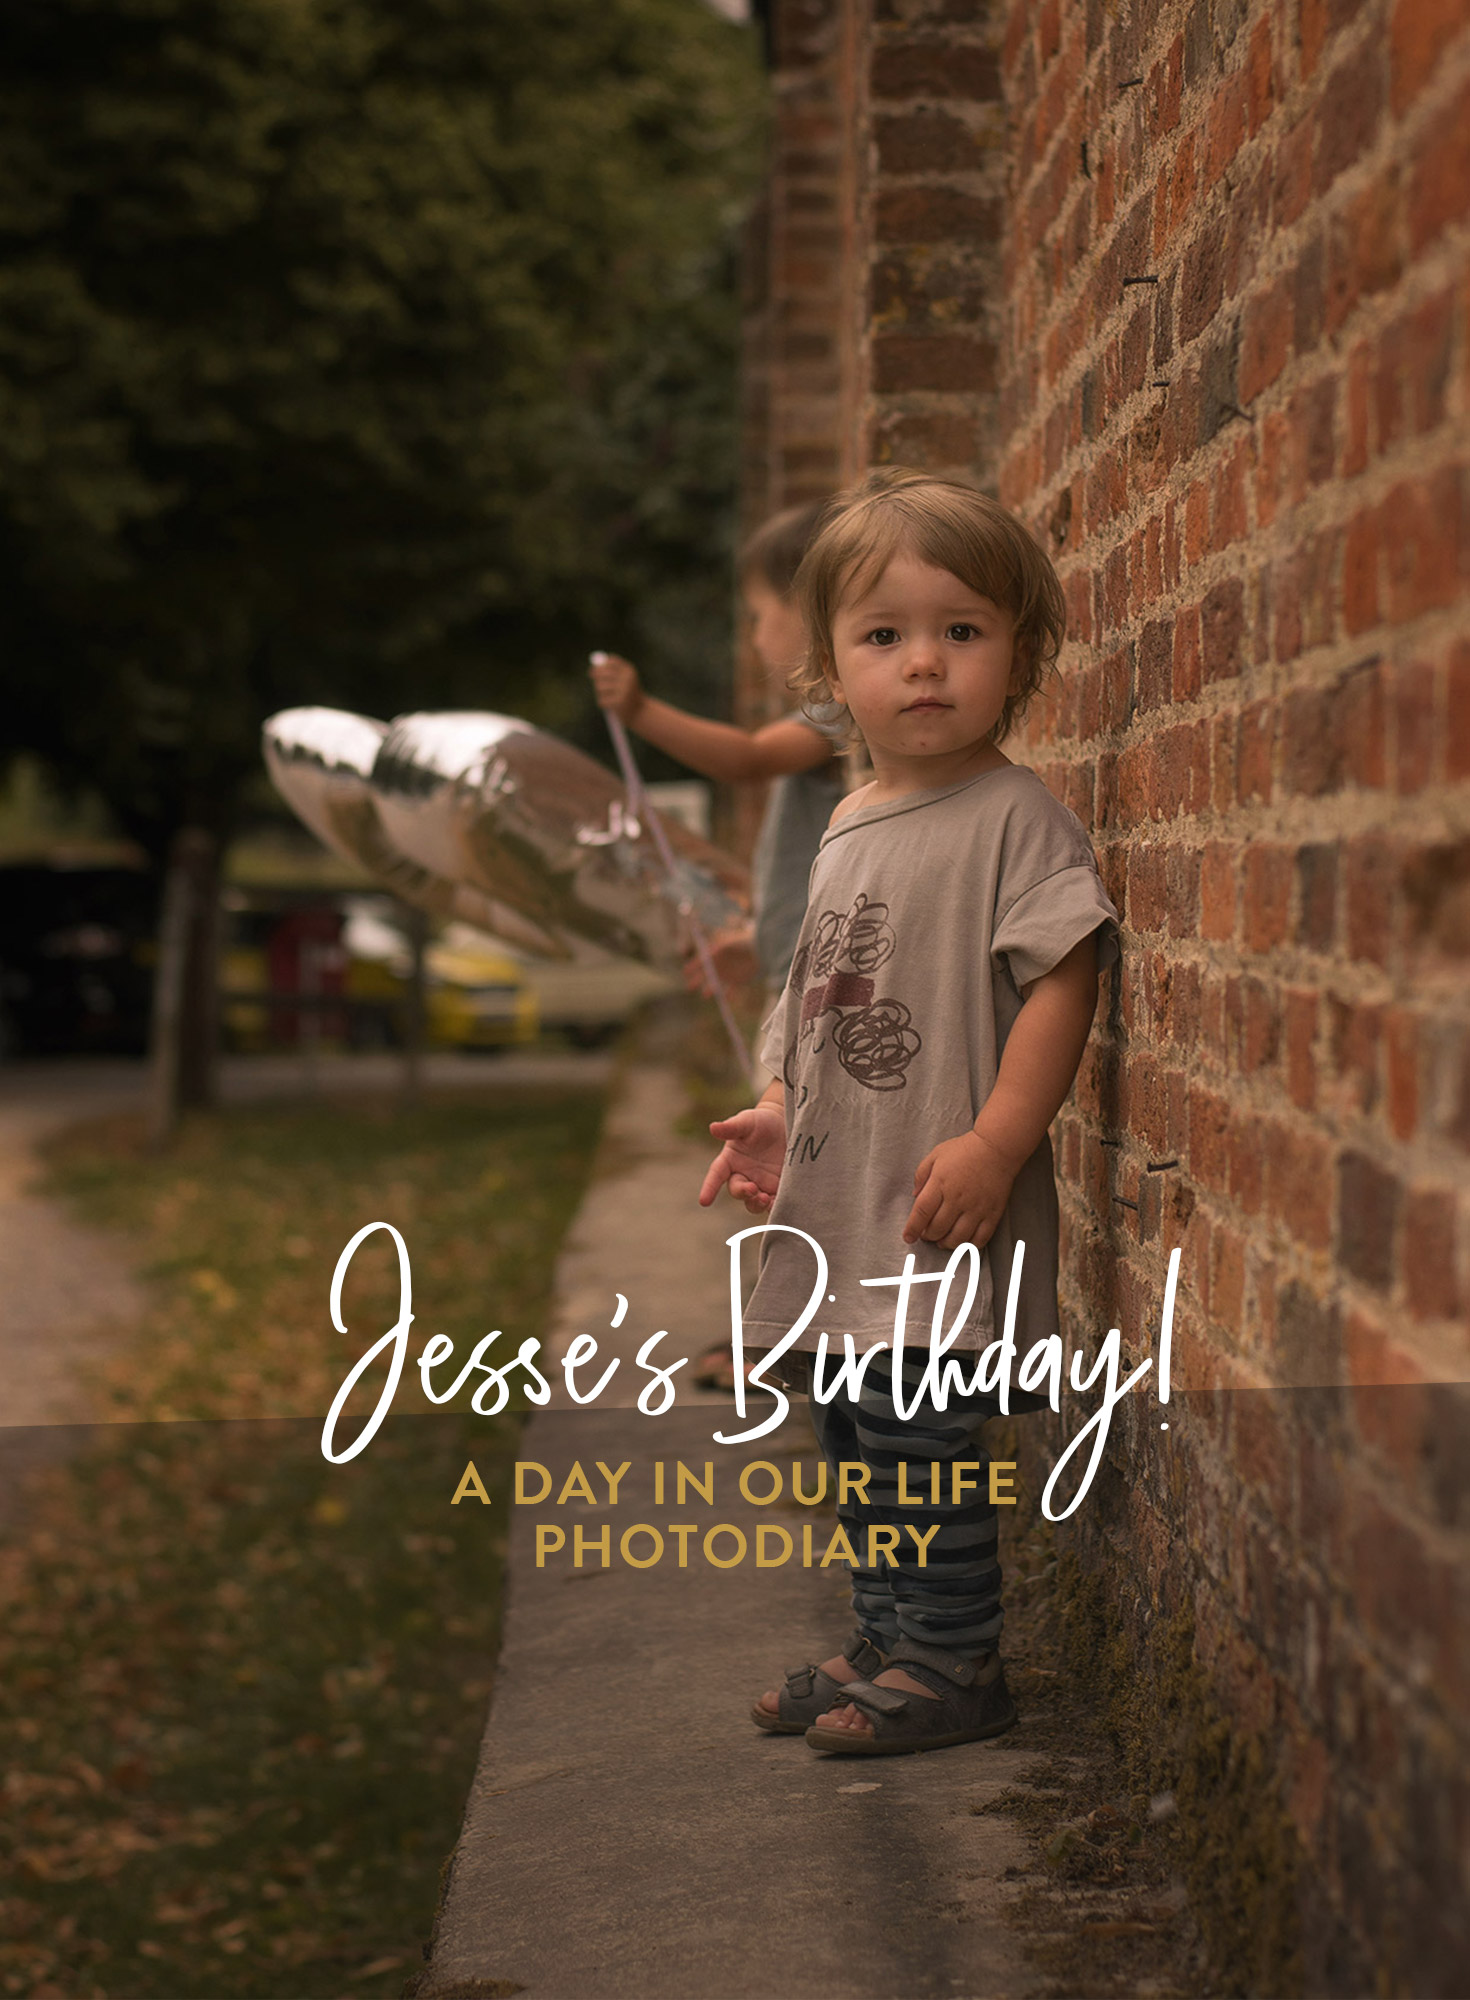 A photodiary of a very special day in the life; Jesse's second birthday and how we celebrated